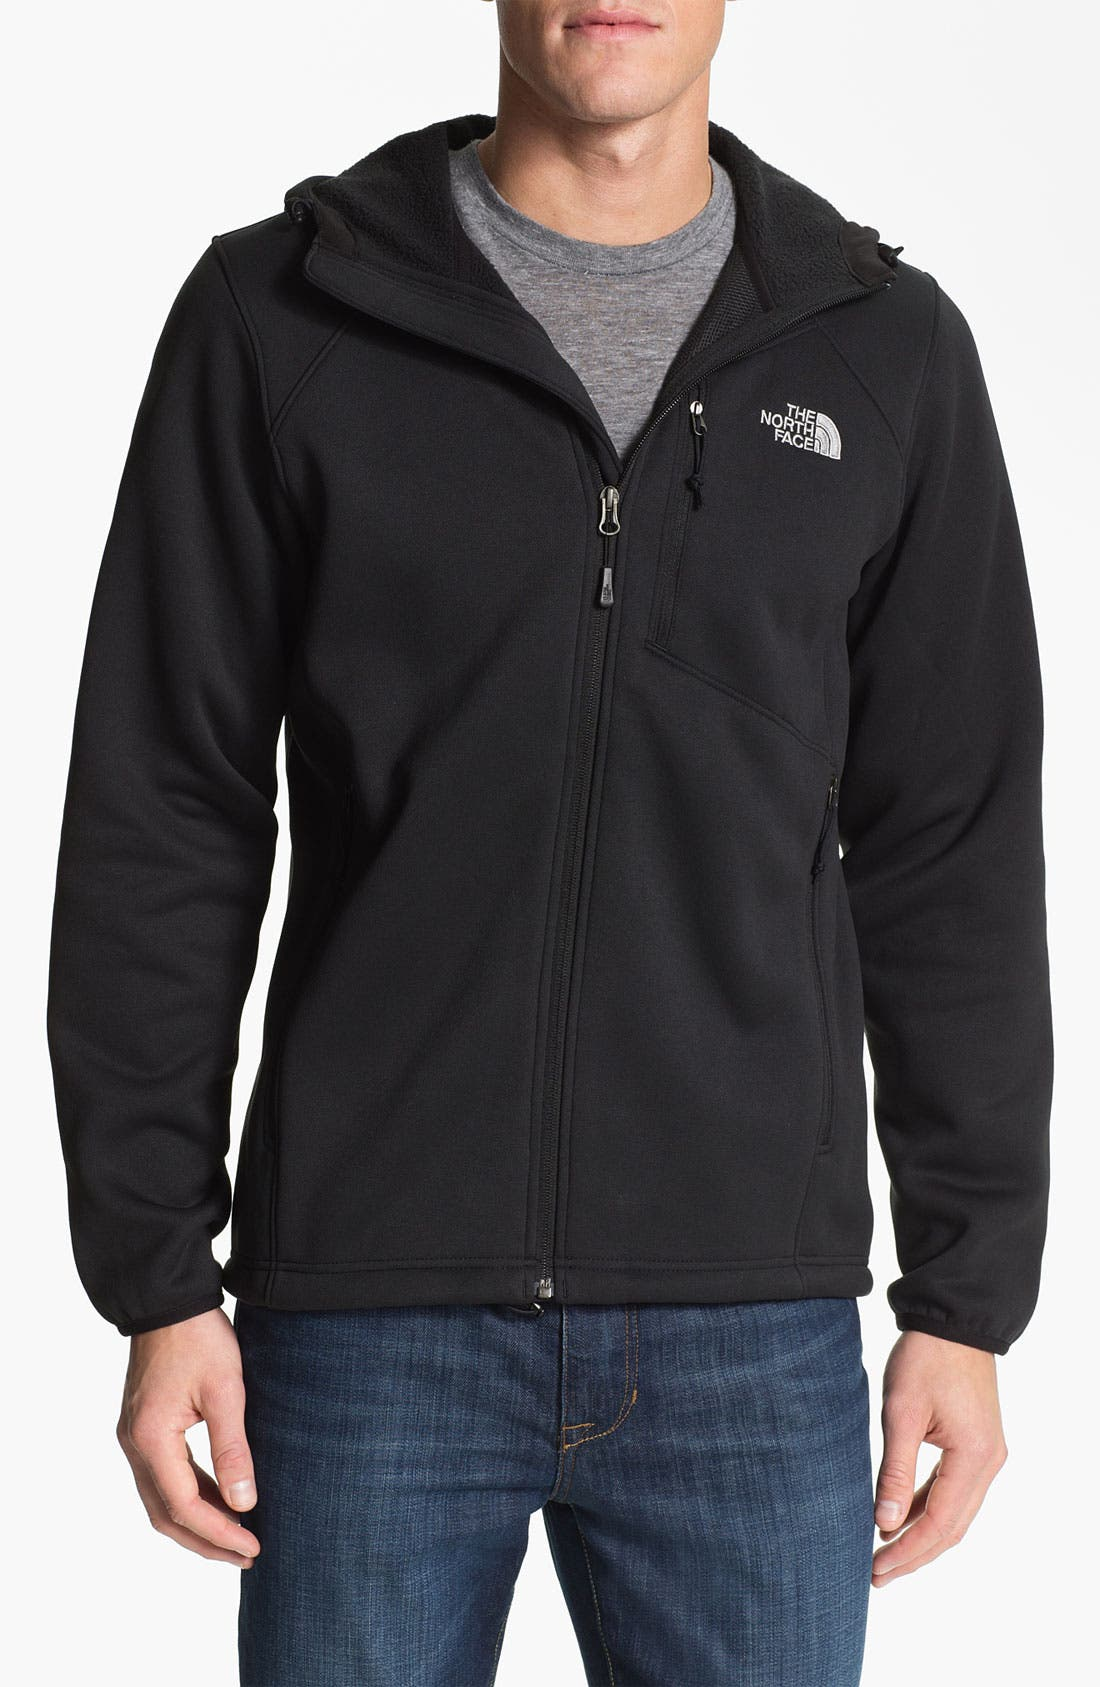 Main Image - The North Face 'Cucamonga' Fleece Jacket